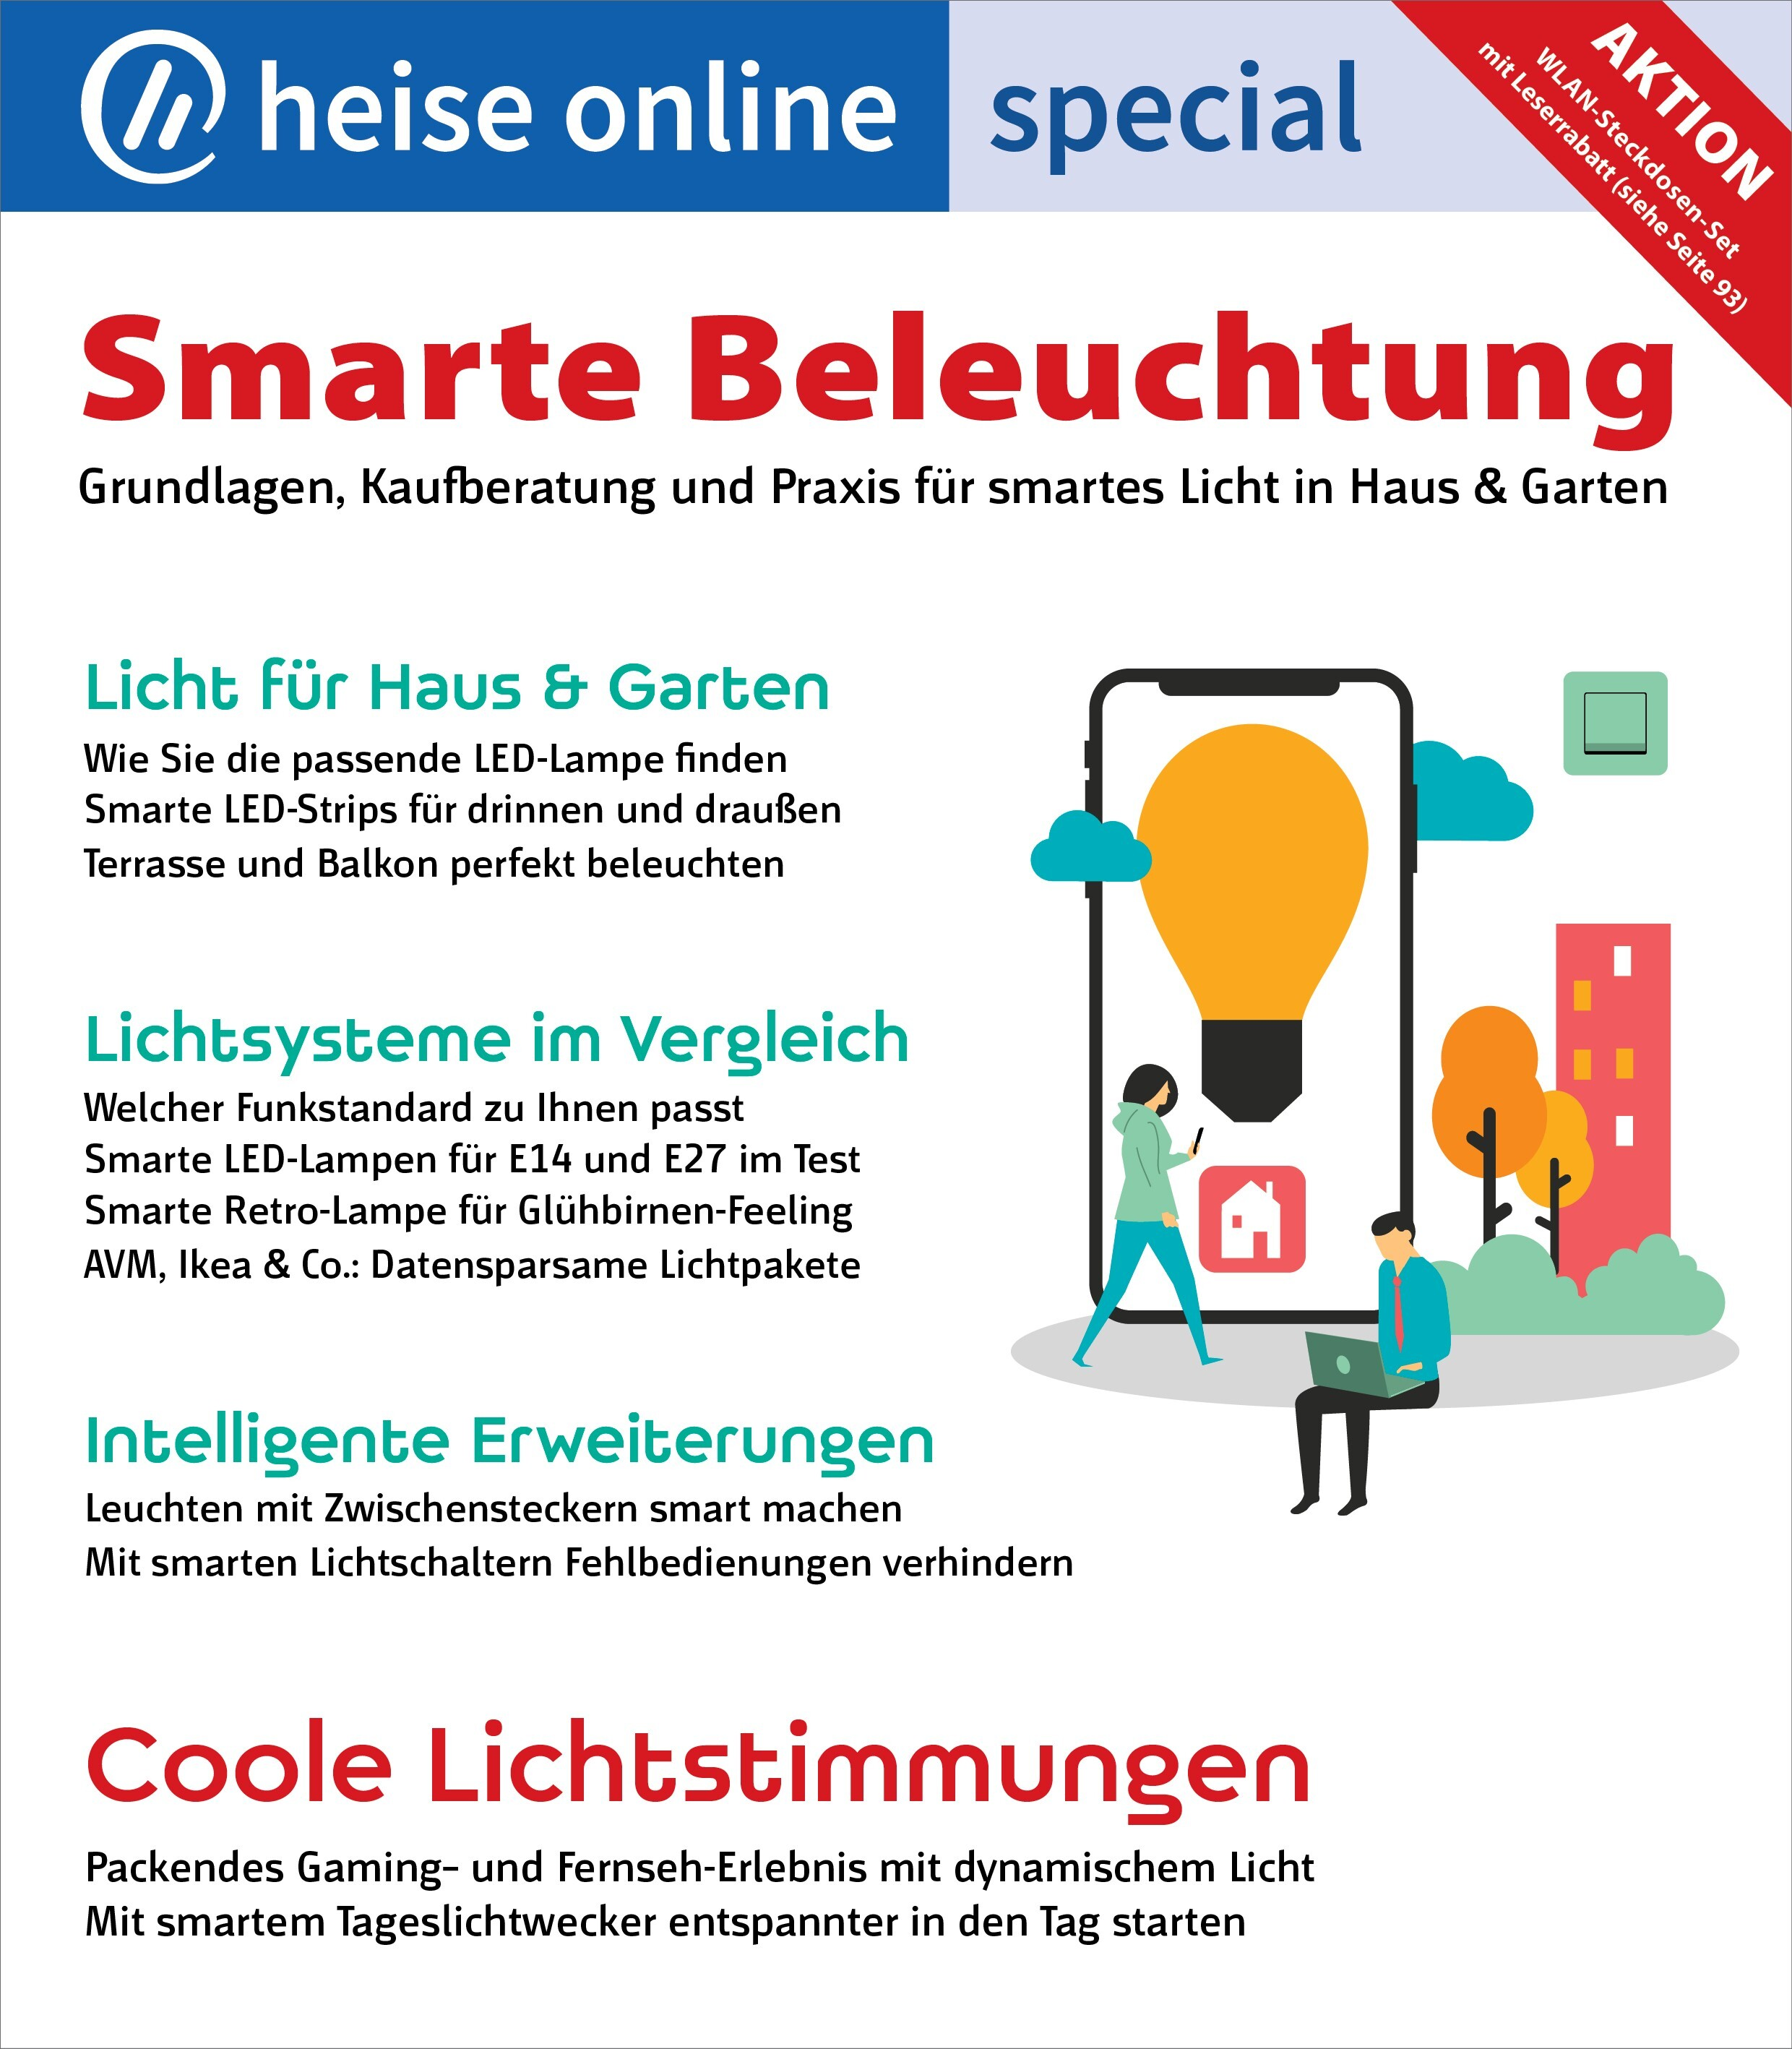 heise online special - Smarte Beleuchtung